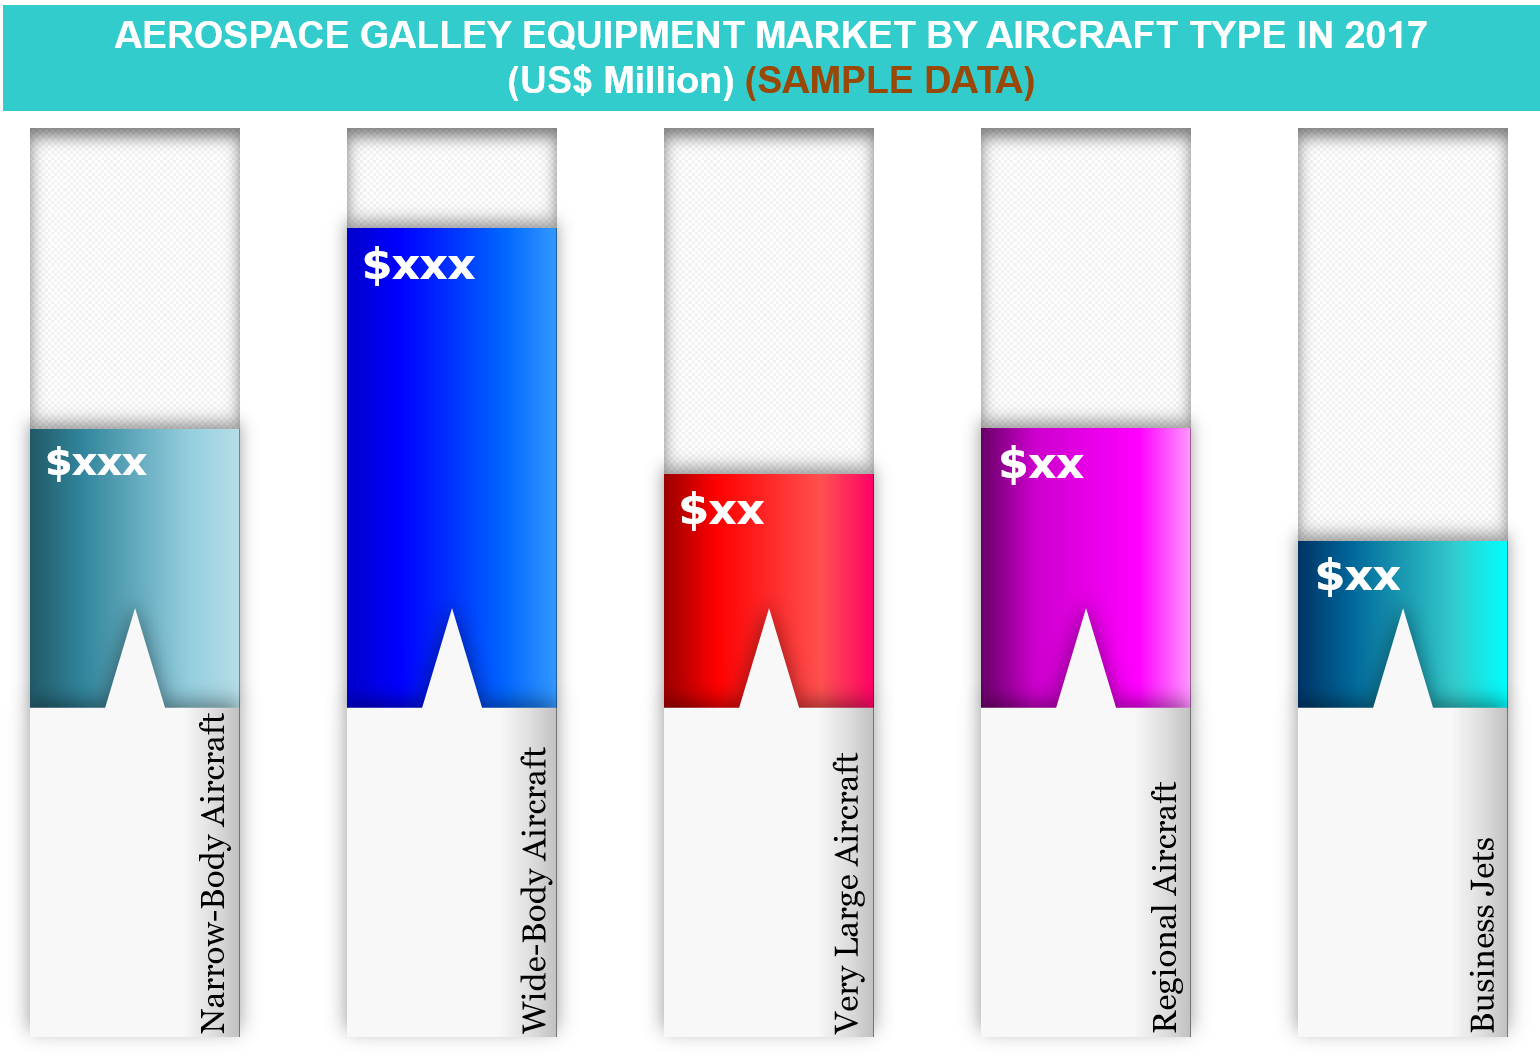 What is the future of Aerospace Galley Equipment Market? Know Covid Impact on Size, Share & Forecasts